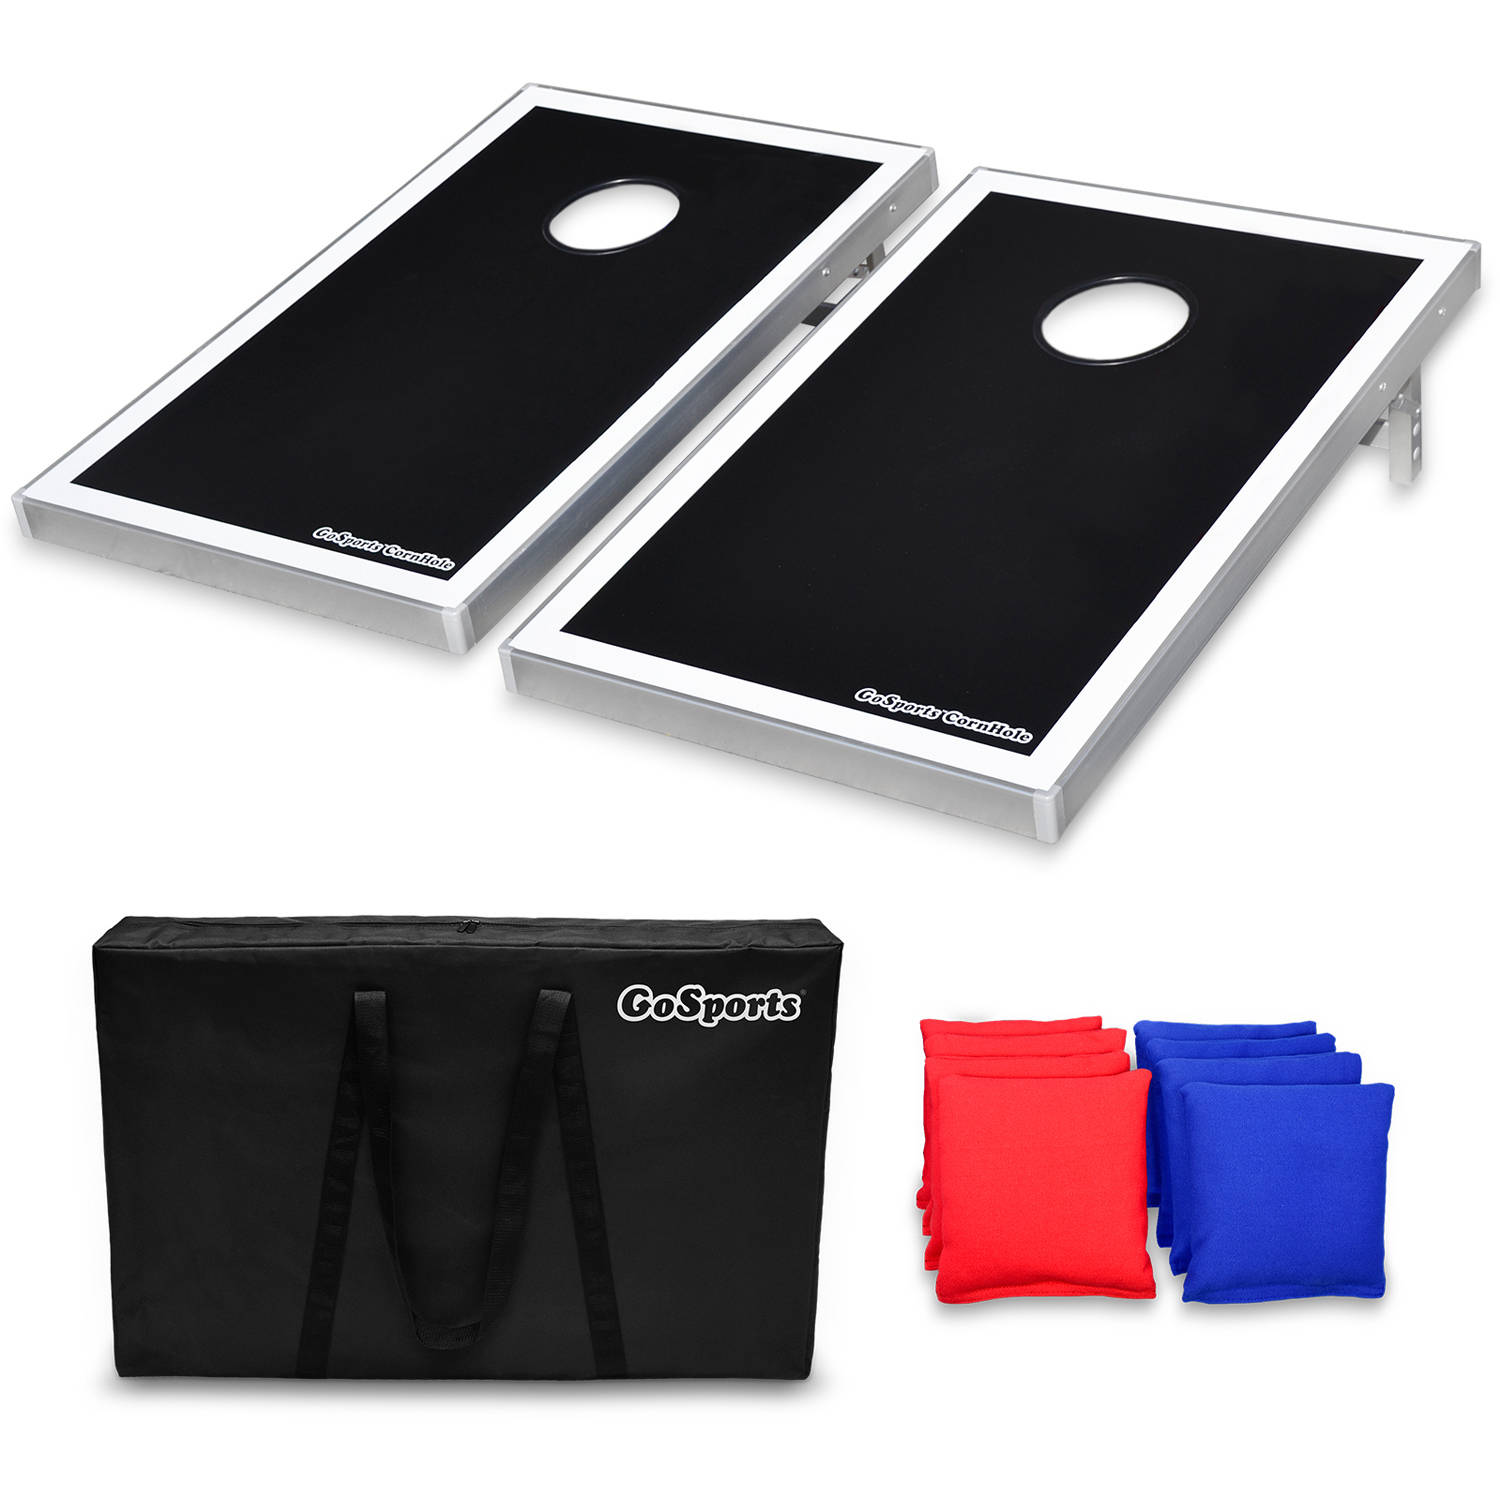 GoSports Foldable Cornhole Boards Bean Bag Toss Game Set, Superior Aluminum Frame, Black Design w/ 8 Bean Bags and Portable Carrying Case